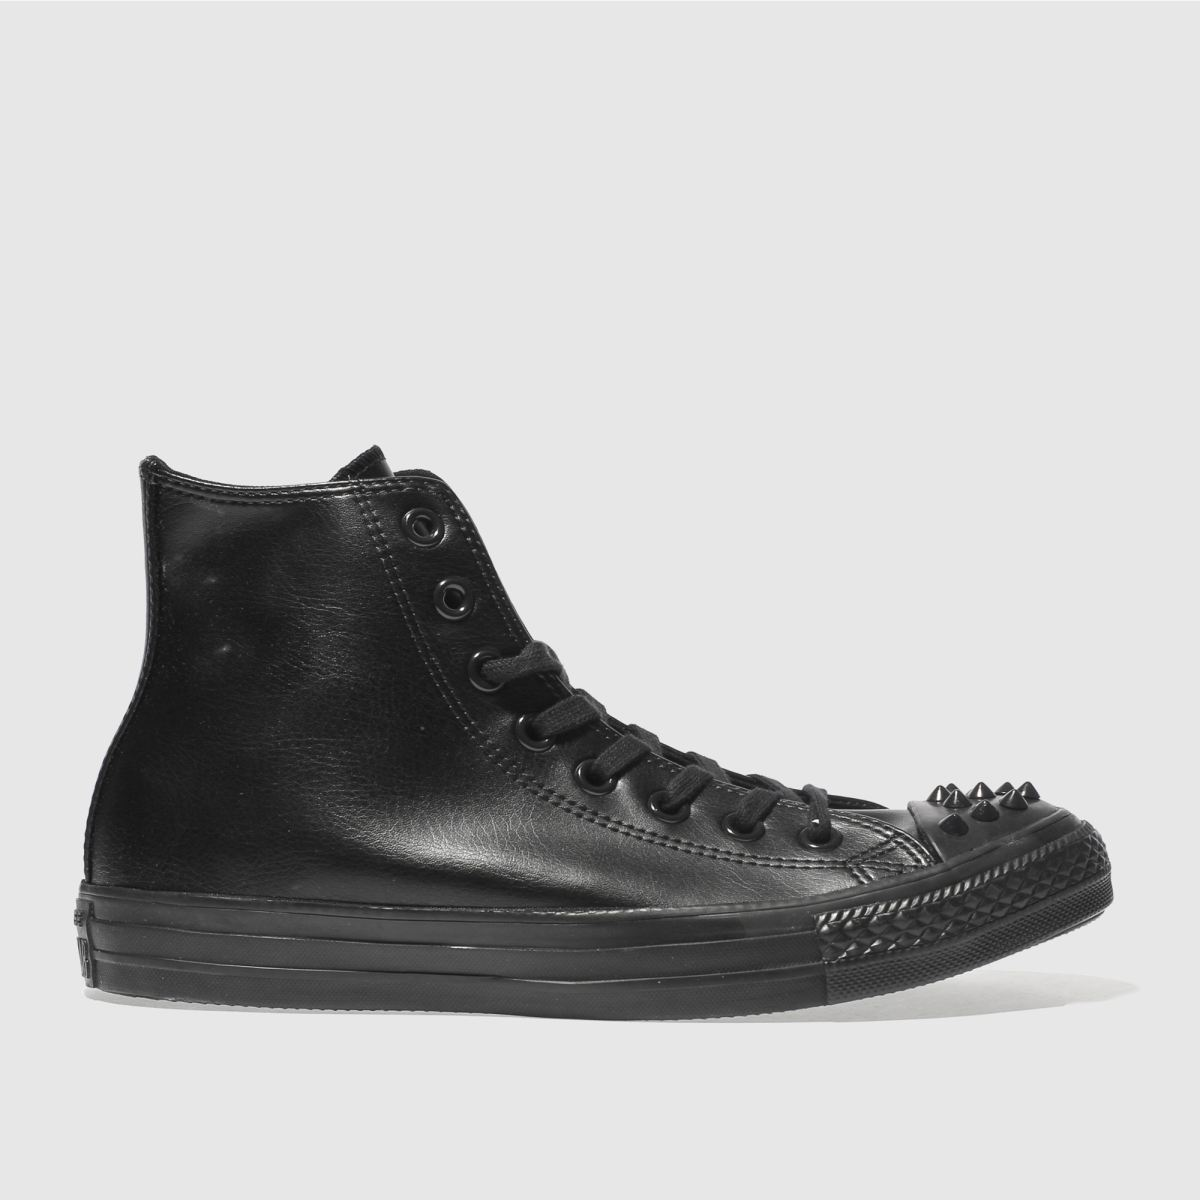 Converse Black Chuck Taylor All Star Studs Hi Trainers